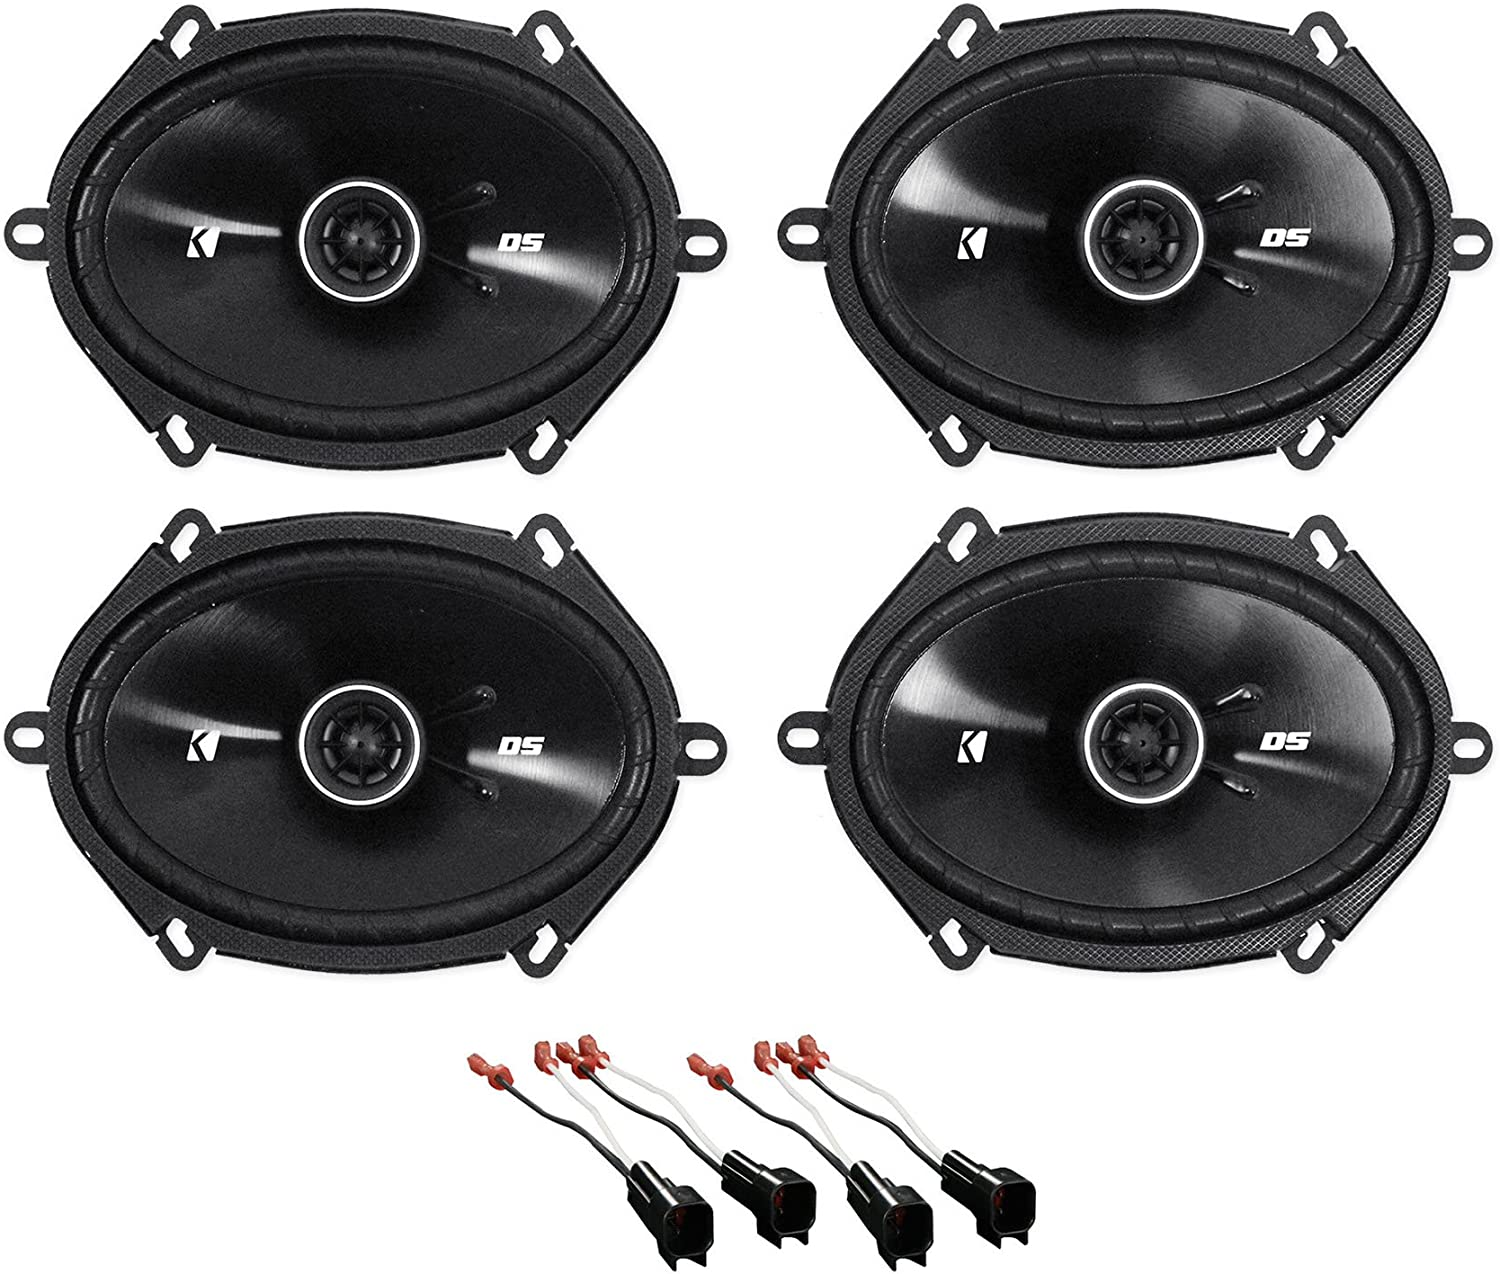 Amazon Com Kicker 6x8 Front Rear Factory Speaker Replacement Kit For 2004 2006 Ford F 150 Car Electronics